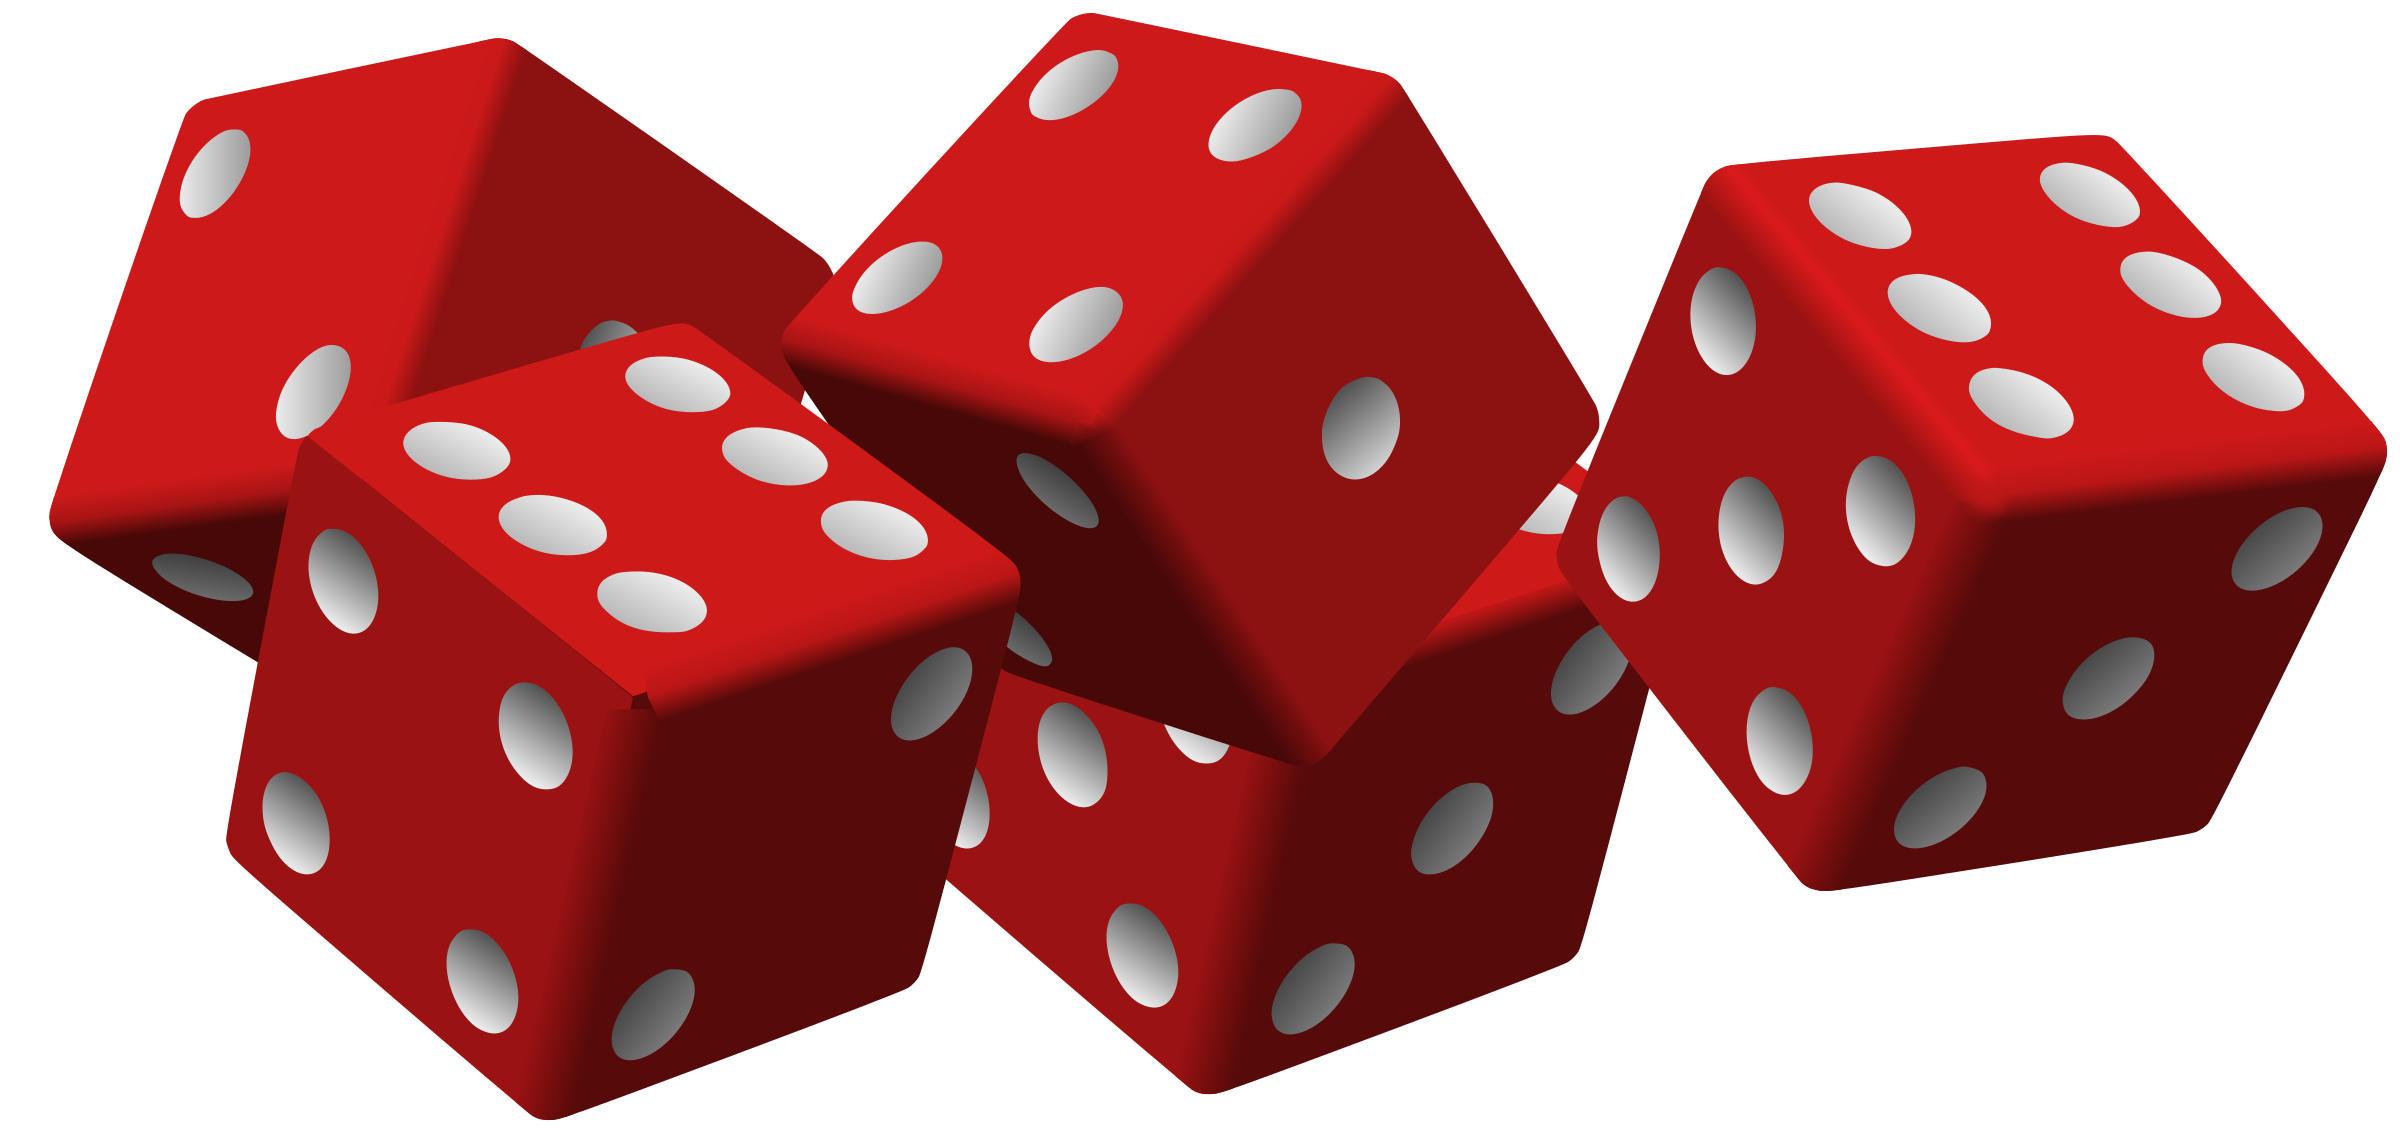 five red dice by mariotomo